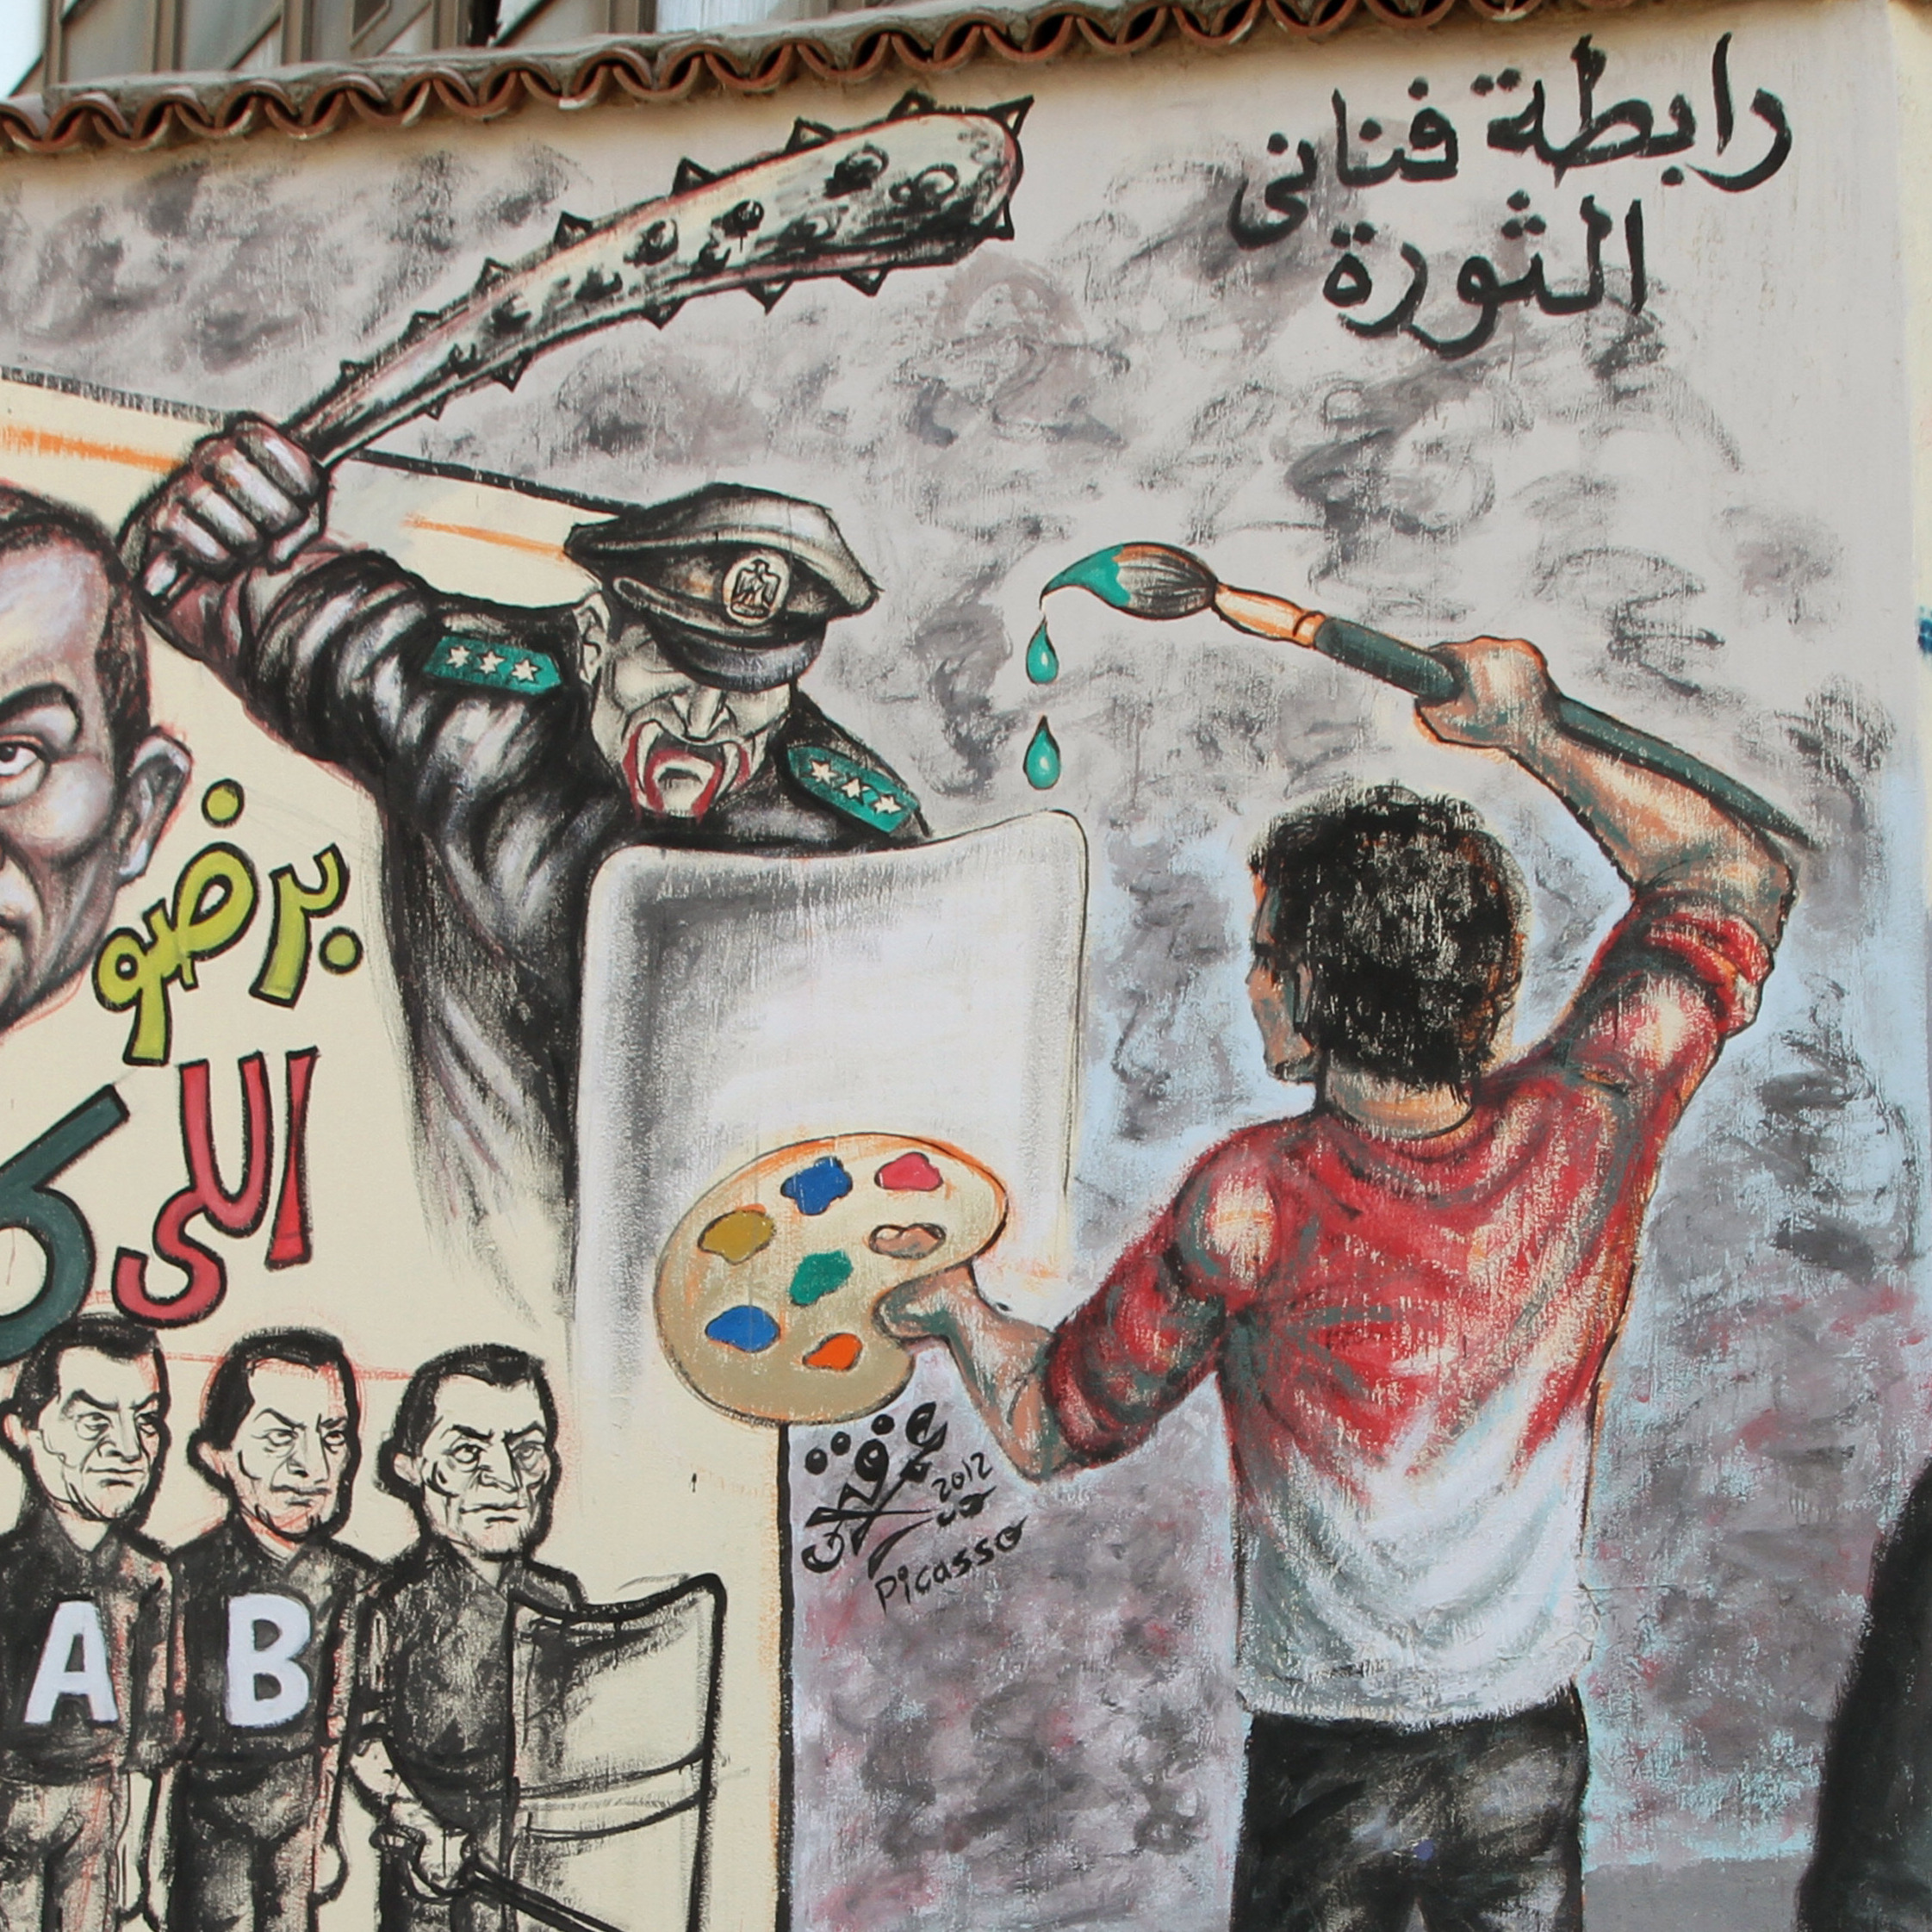 A painter uses his brush against a policeman armed with a mace. This mural is at the intersection of Muhammad Mahmud Street and Tahrir Square, Cairo, Egypt.